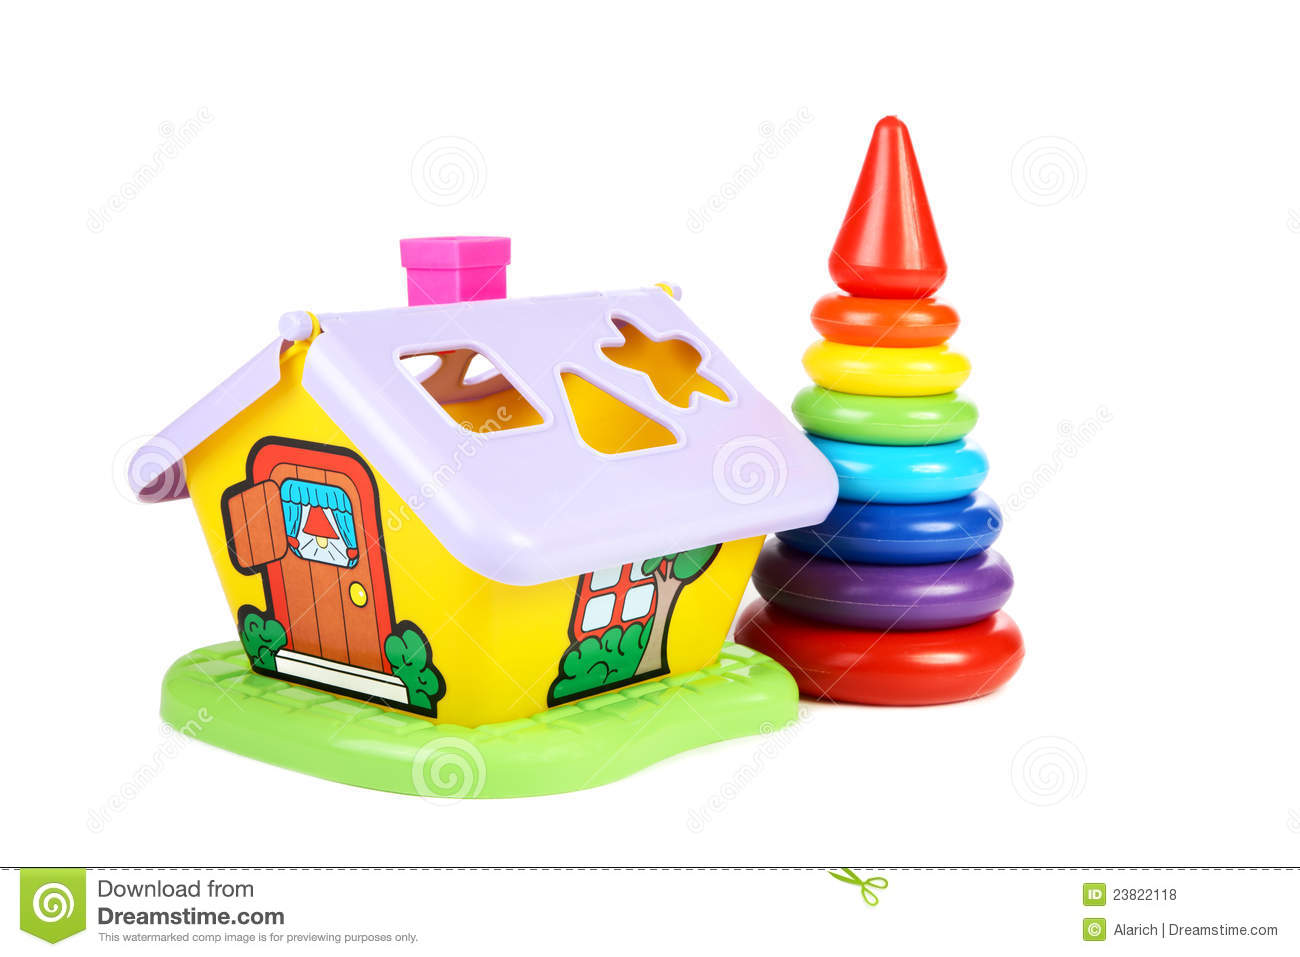 Royalty Free Stock Photos Children S Toys Small House Pyramid Image23822118 as well Lawsuit Filed For Deadly Crash furthermore Wright Brothers First Flight Randy Steele additionally People details additionally Arsenic 20and 20Old 20Lace. on old airplane radio